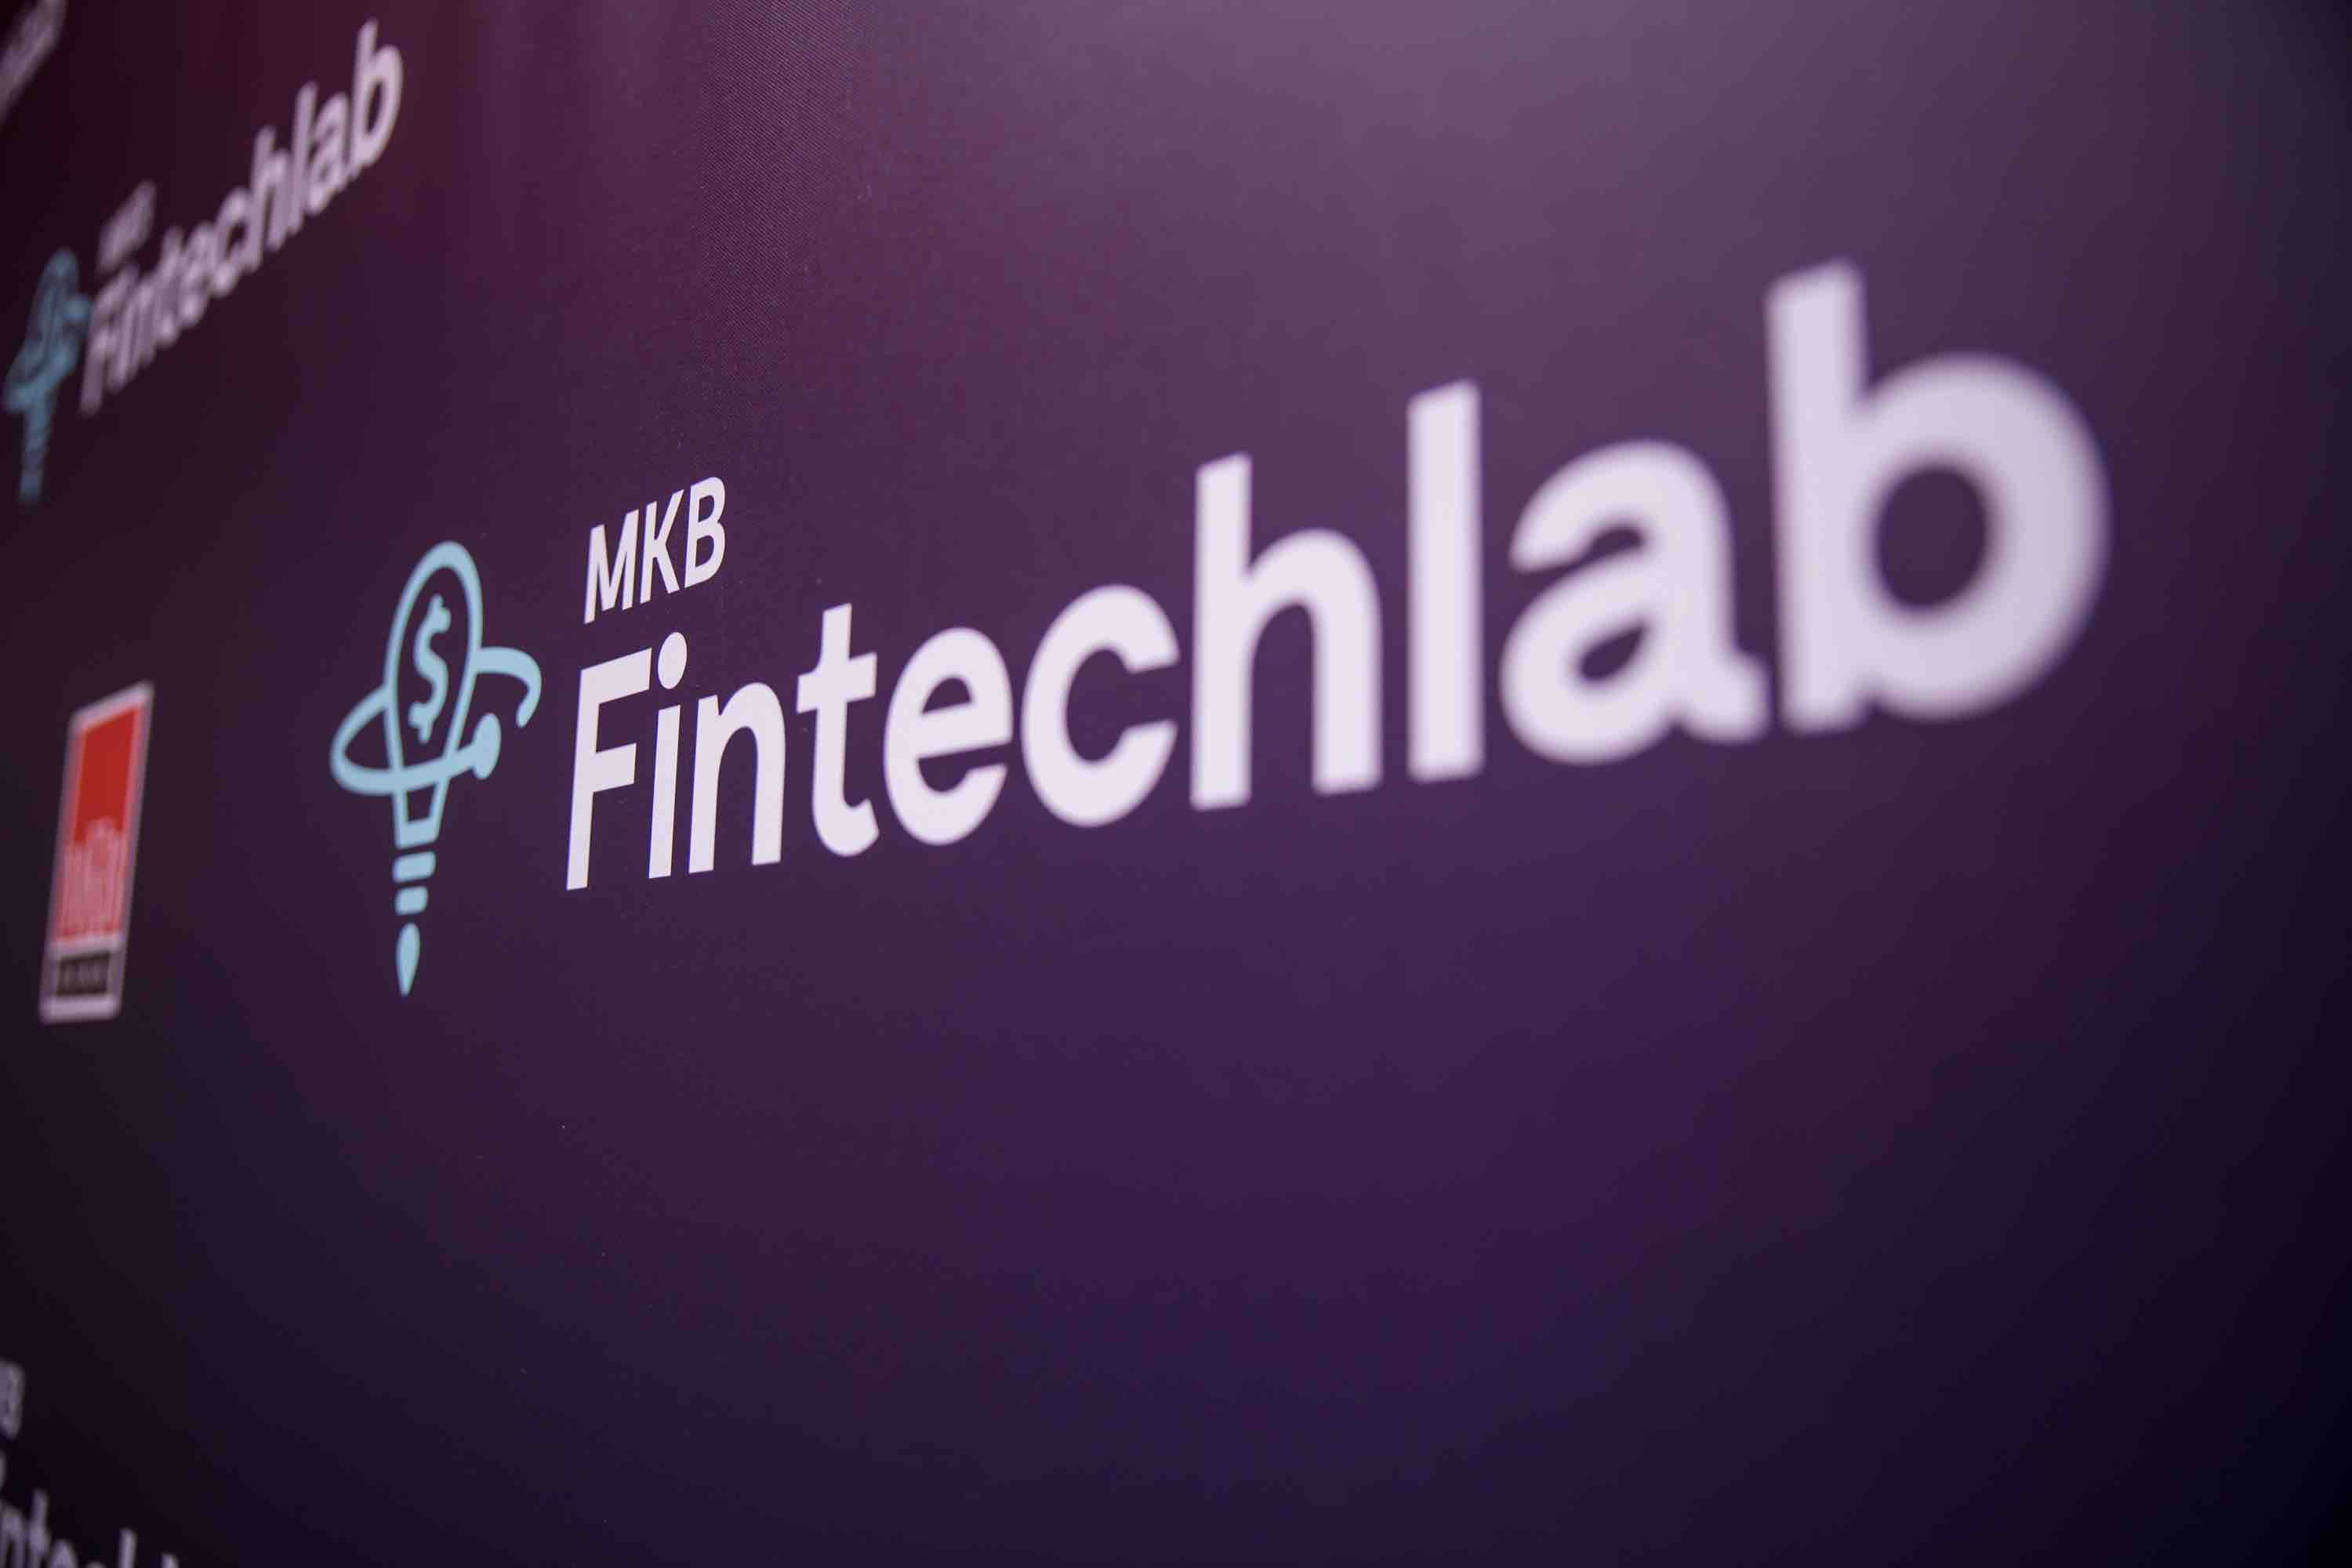 mkb-fintechlab-demoday-min